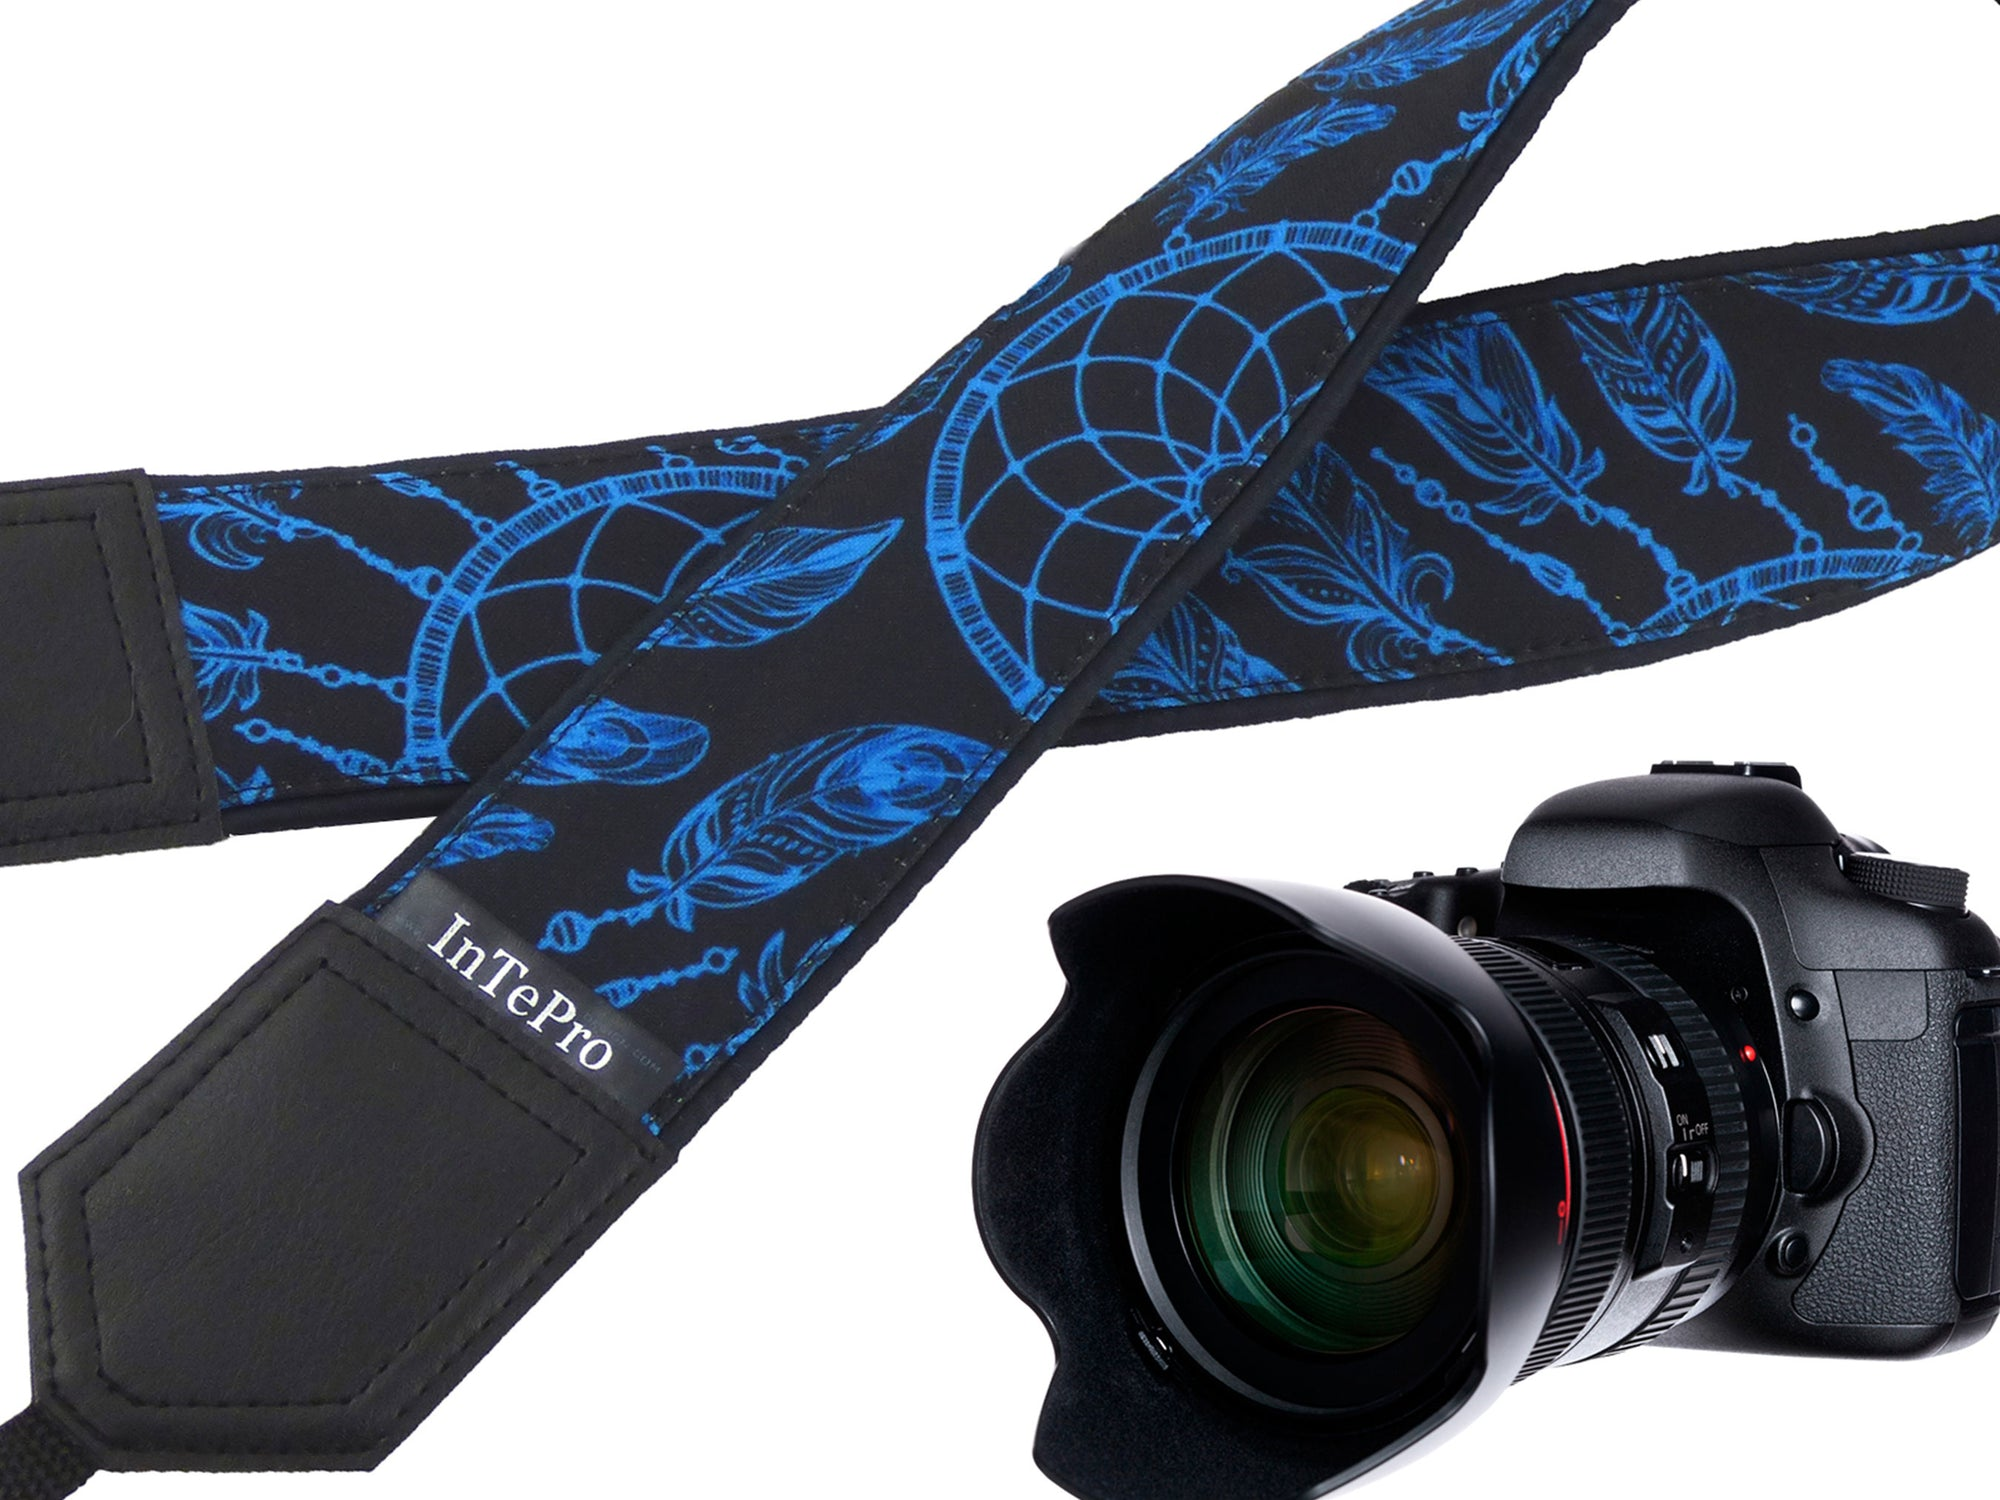 Dreamcatcher camera strap. Turquoise and black camera strap. DSLR / SLR accessories. Durable, light and padded camera strap by InTePro